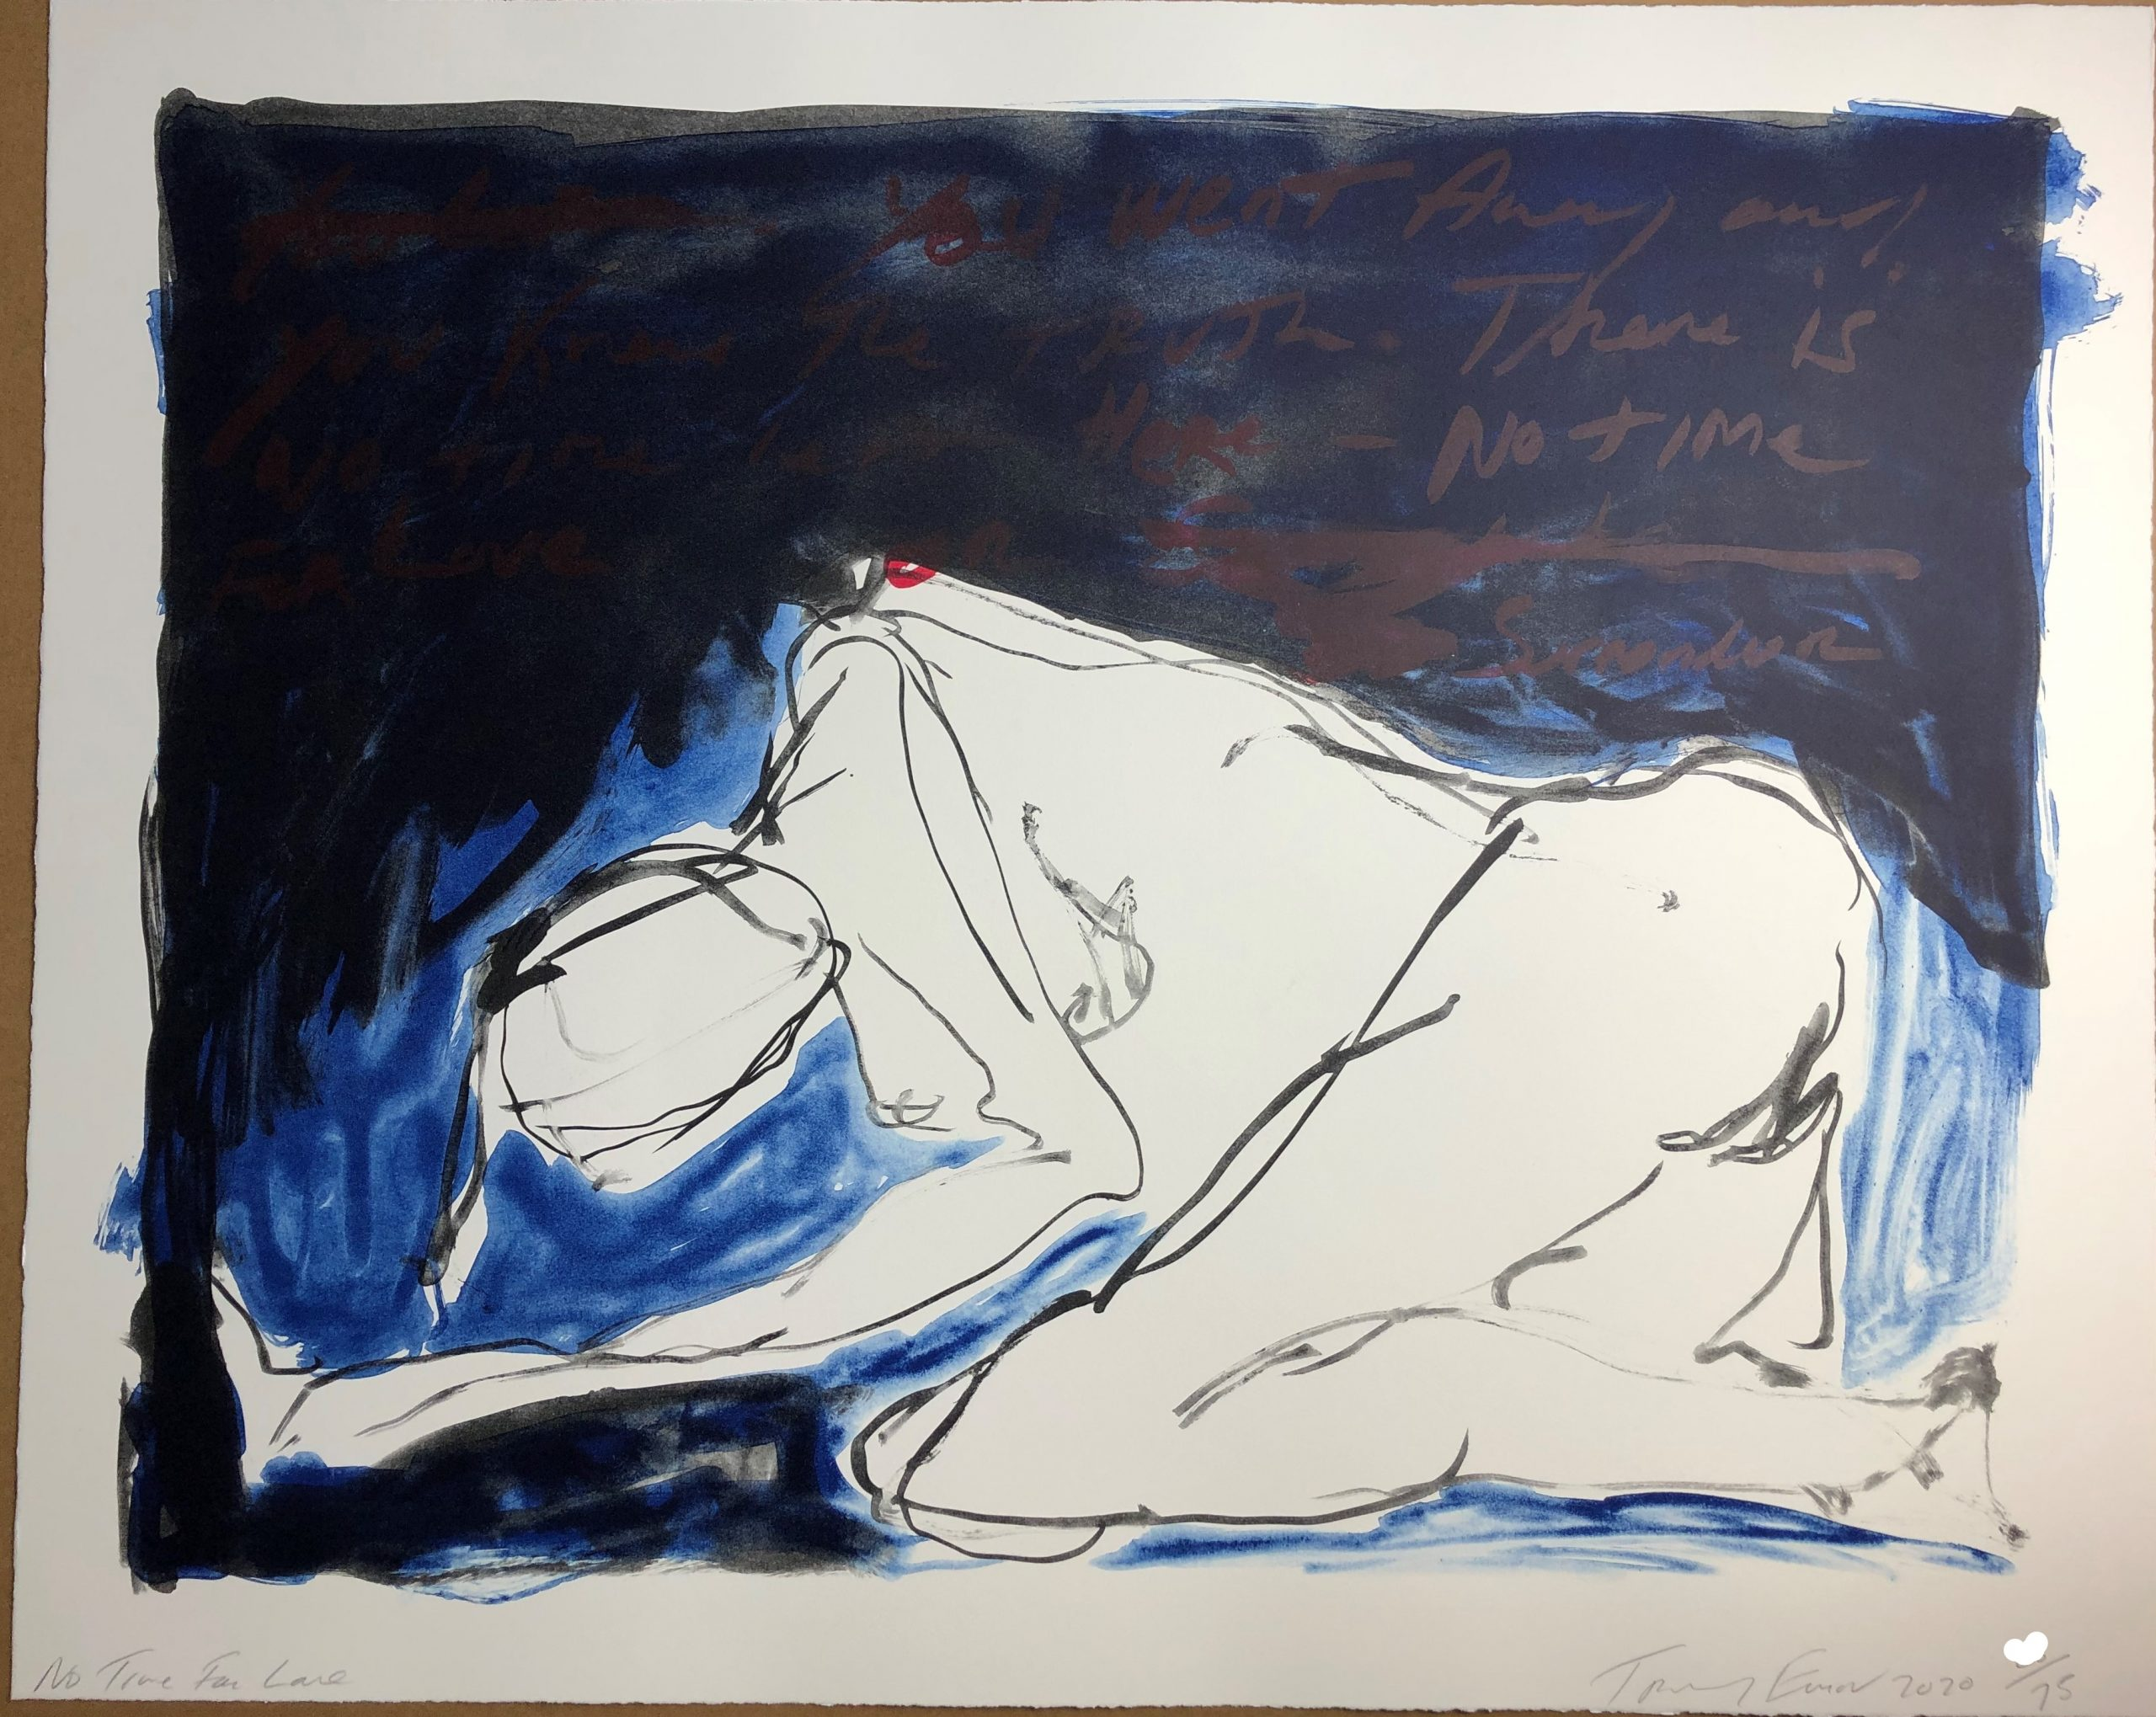 """Tracey Emin """"No Time For Love"""" by Tracey Emin"""